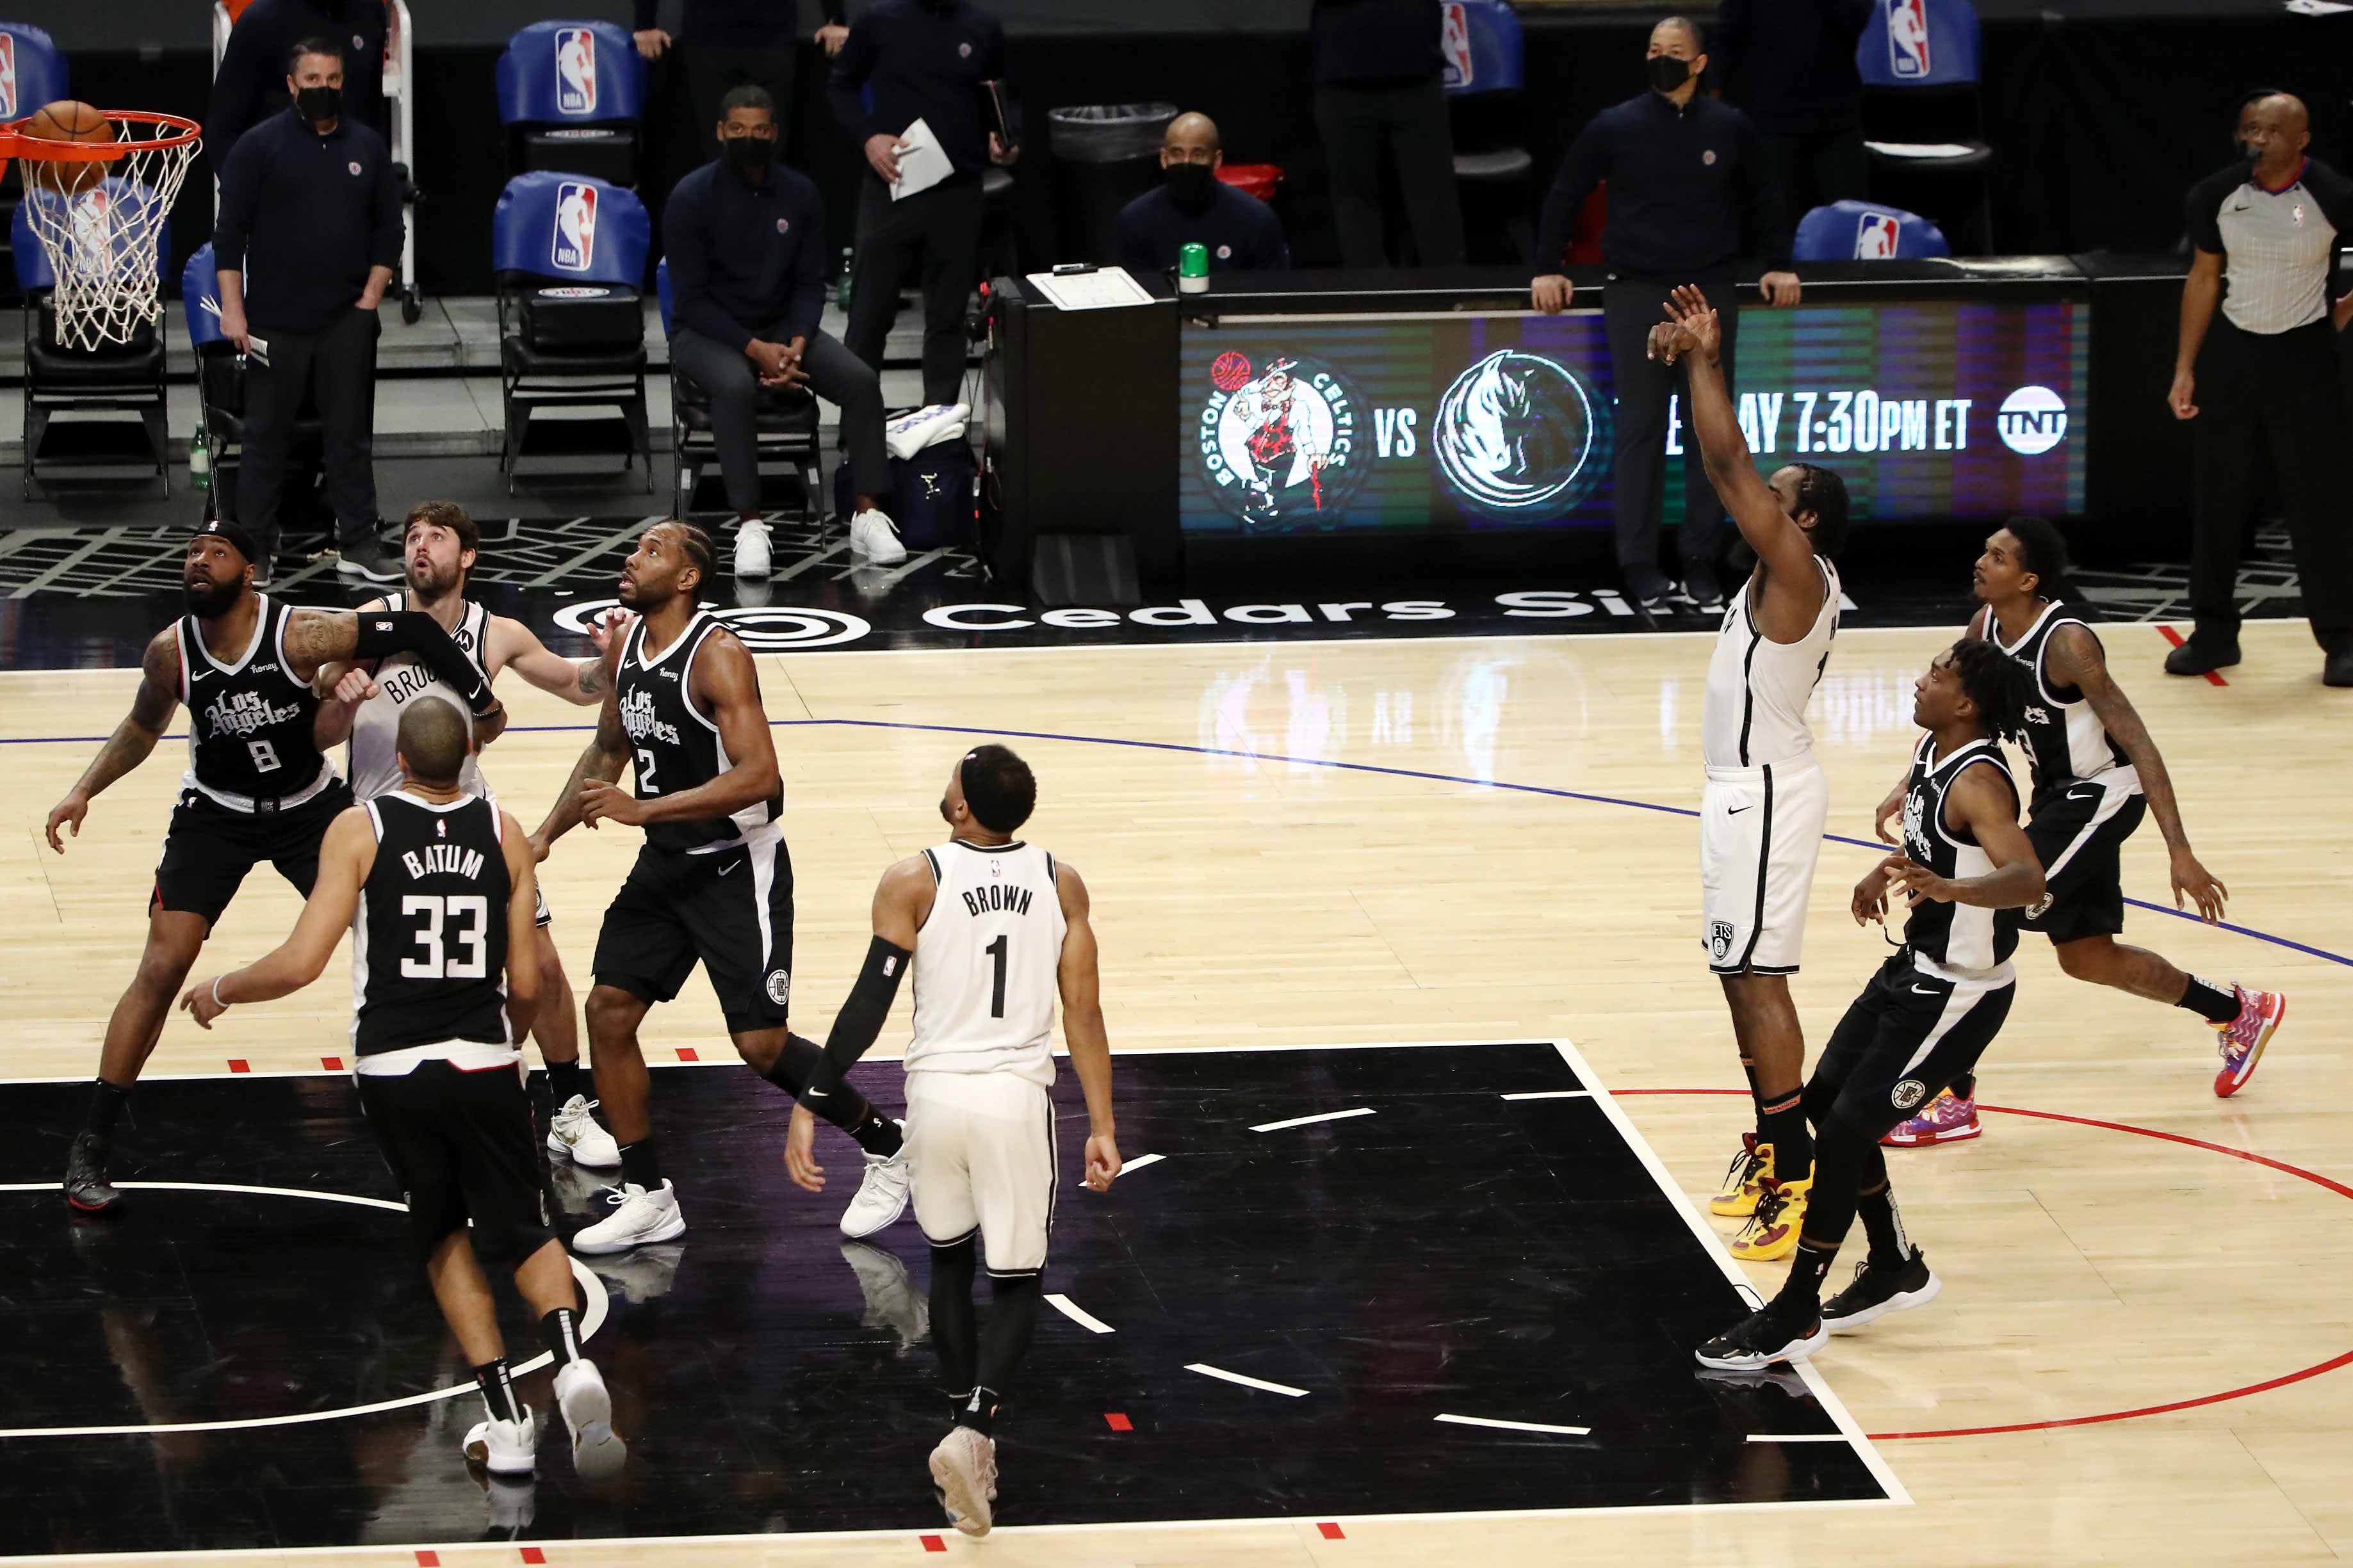 James Harden #13 of the Brooklyn Nets makes a free throw shot